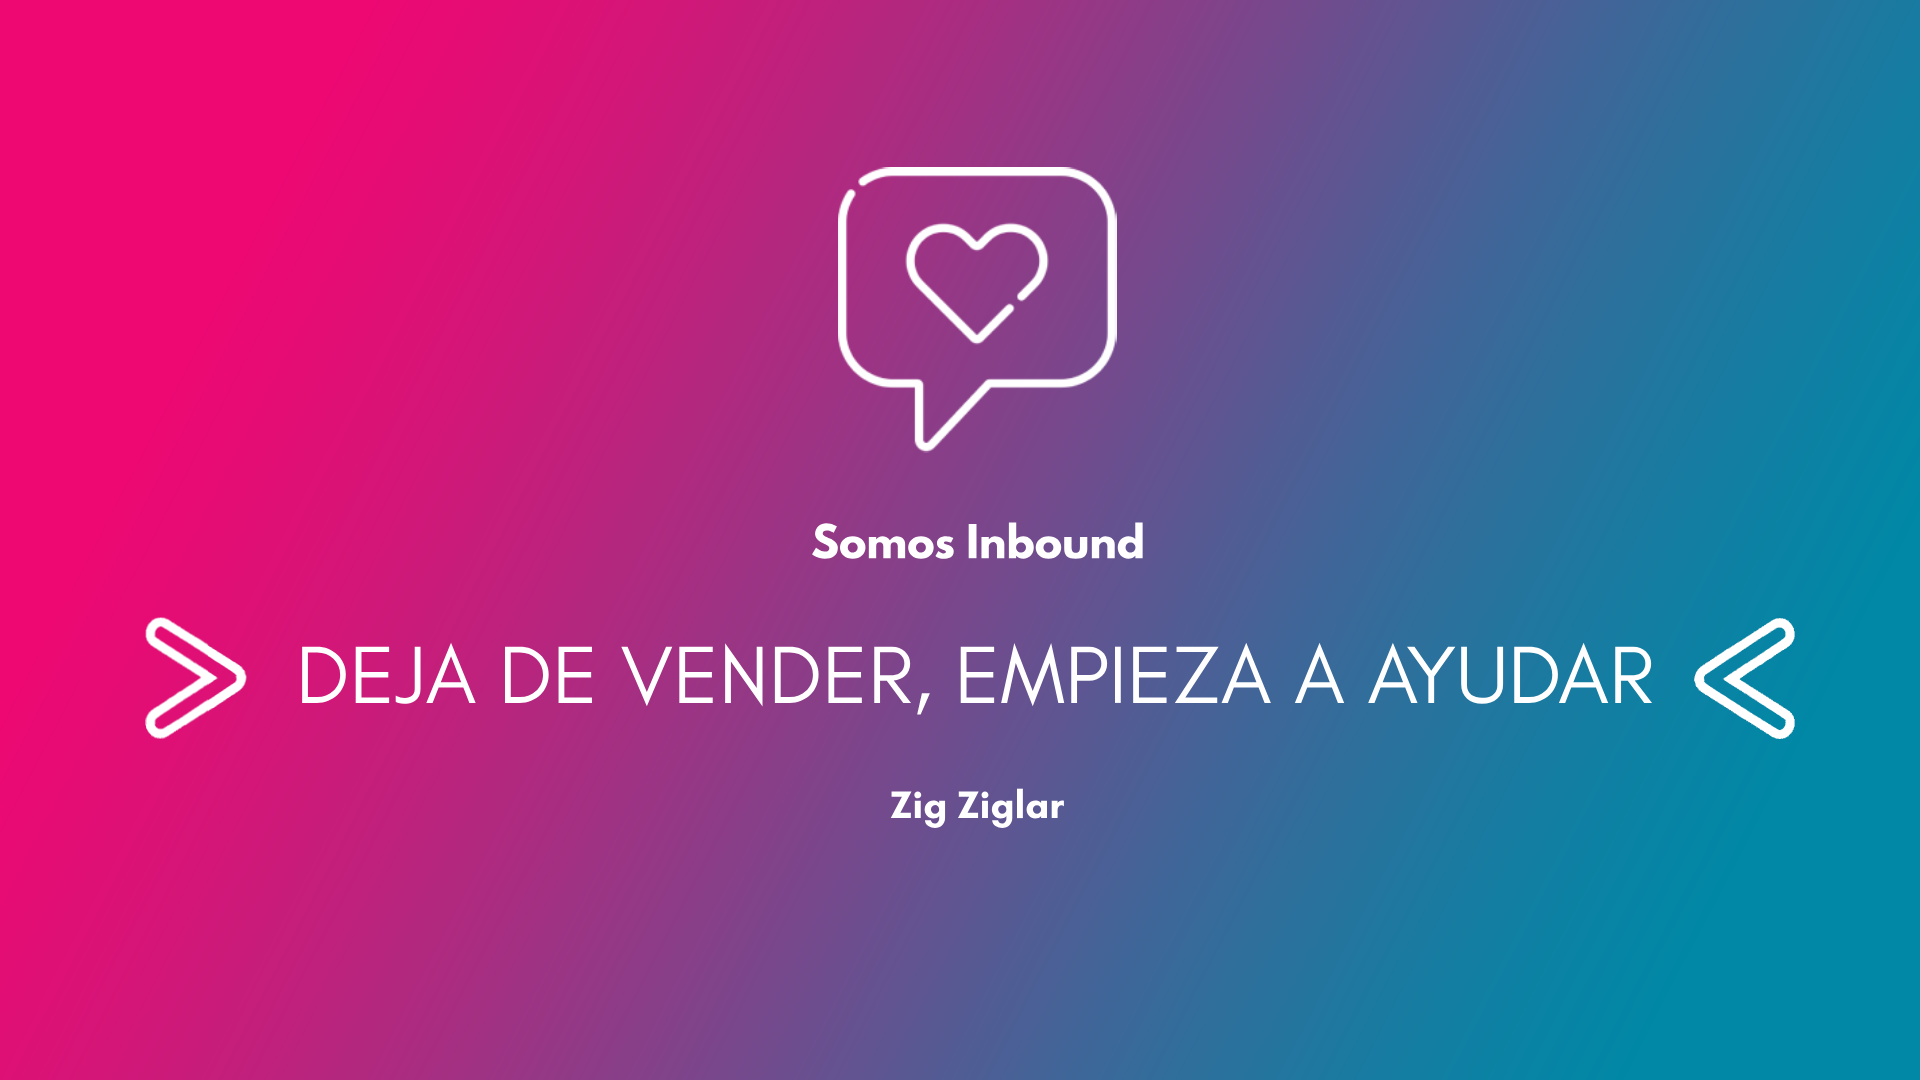 somos-inbound-marketing-agencia-bizmarketing